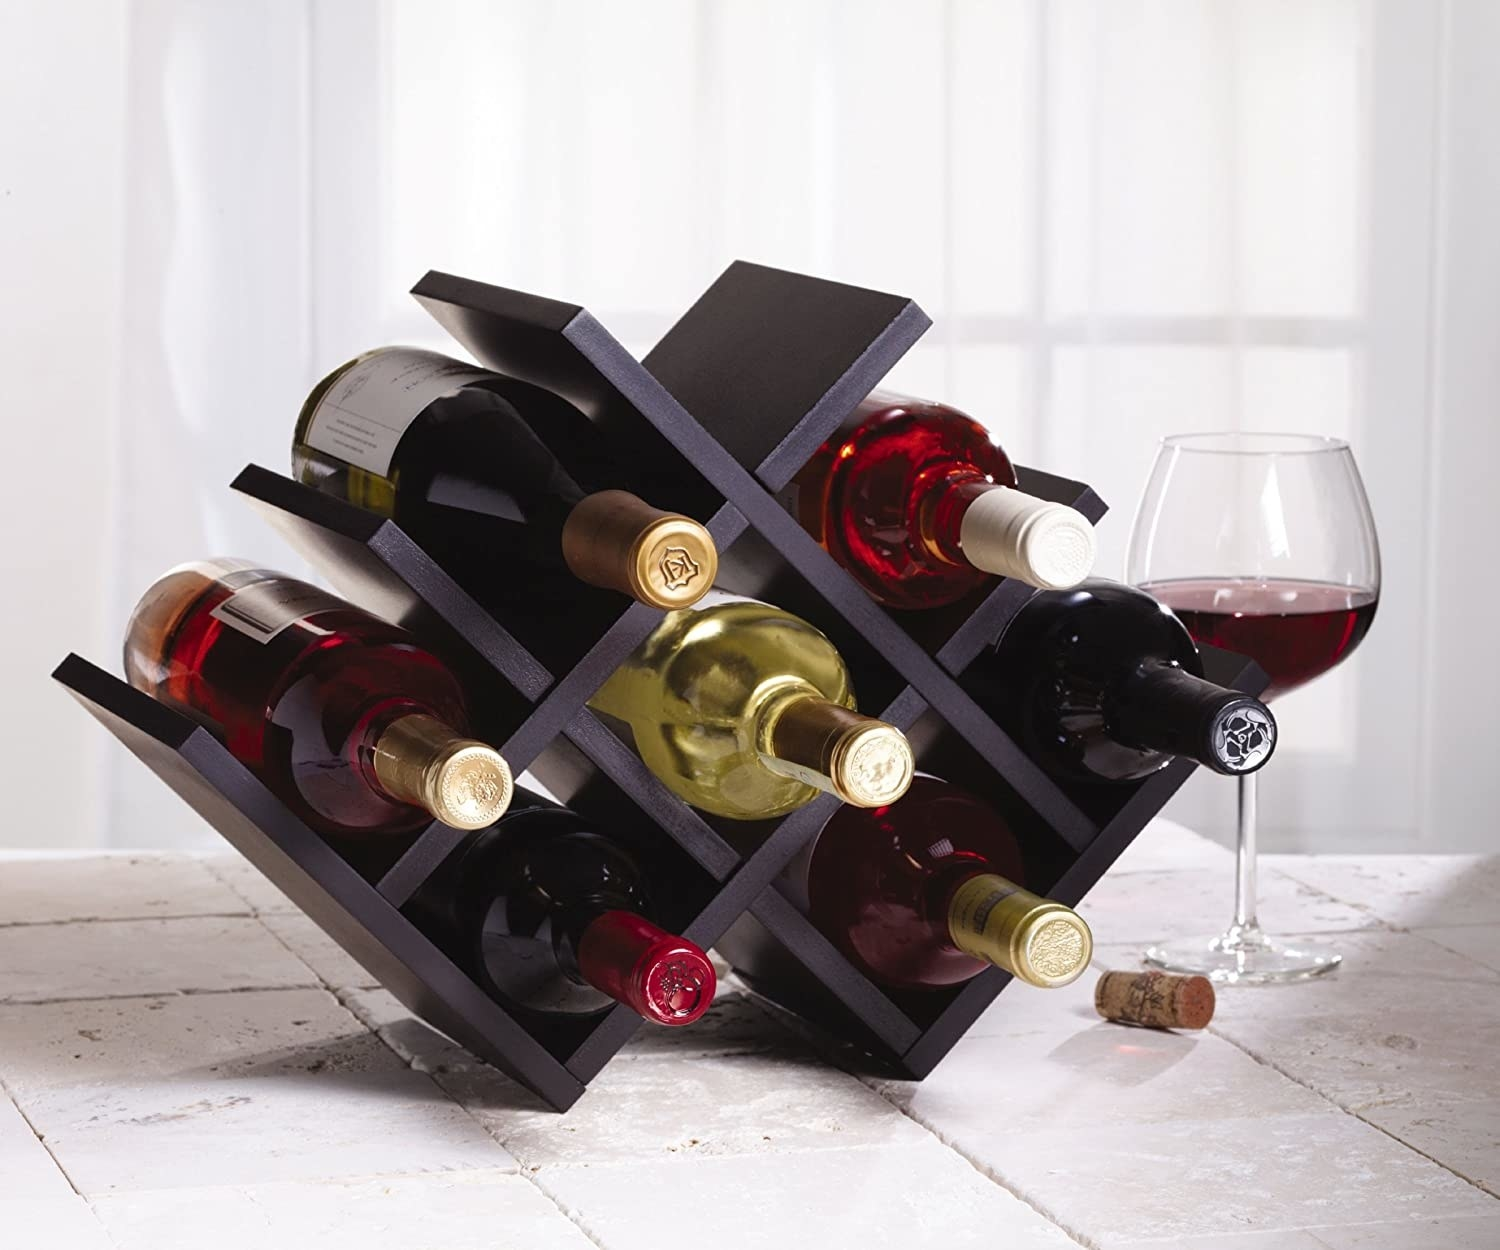 A winerack sits on a table with wine bottles in it and a glass of red wine beside it